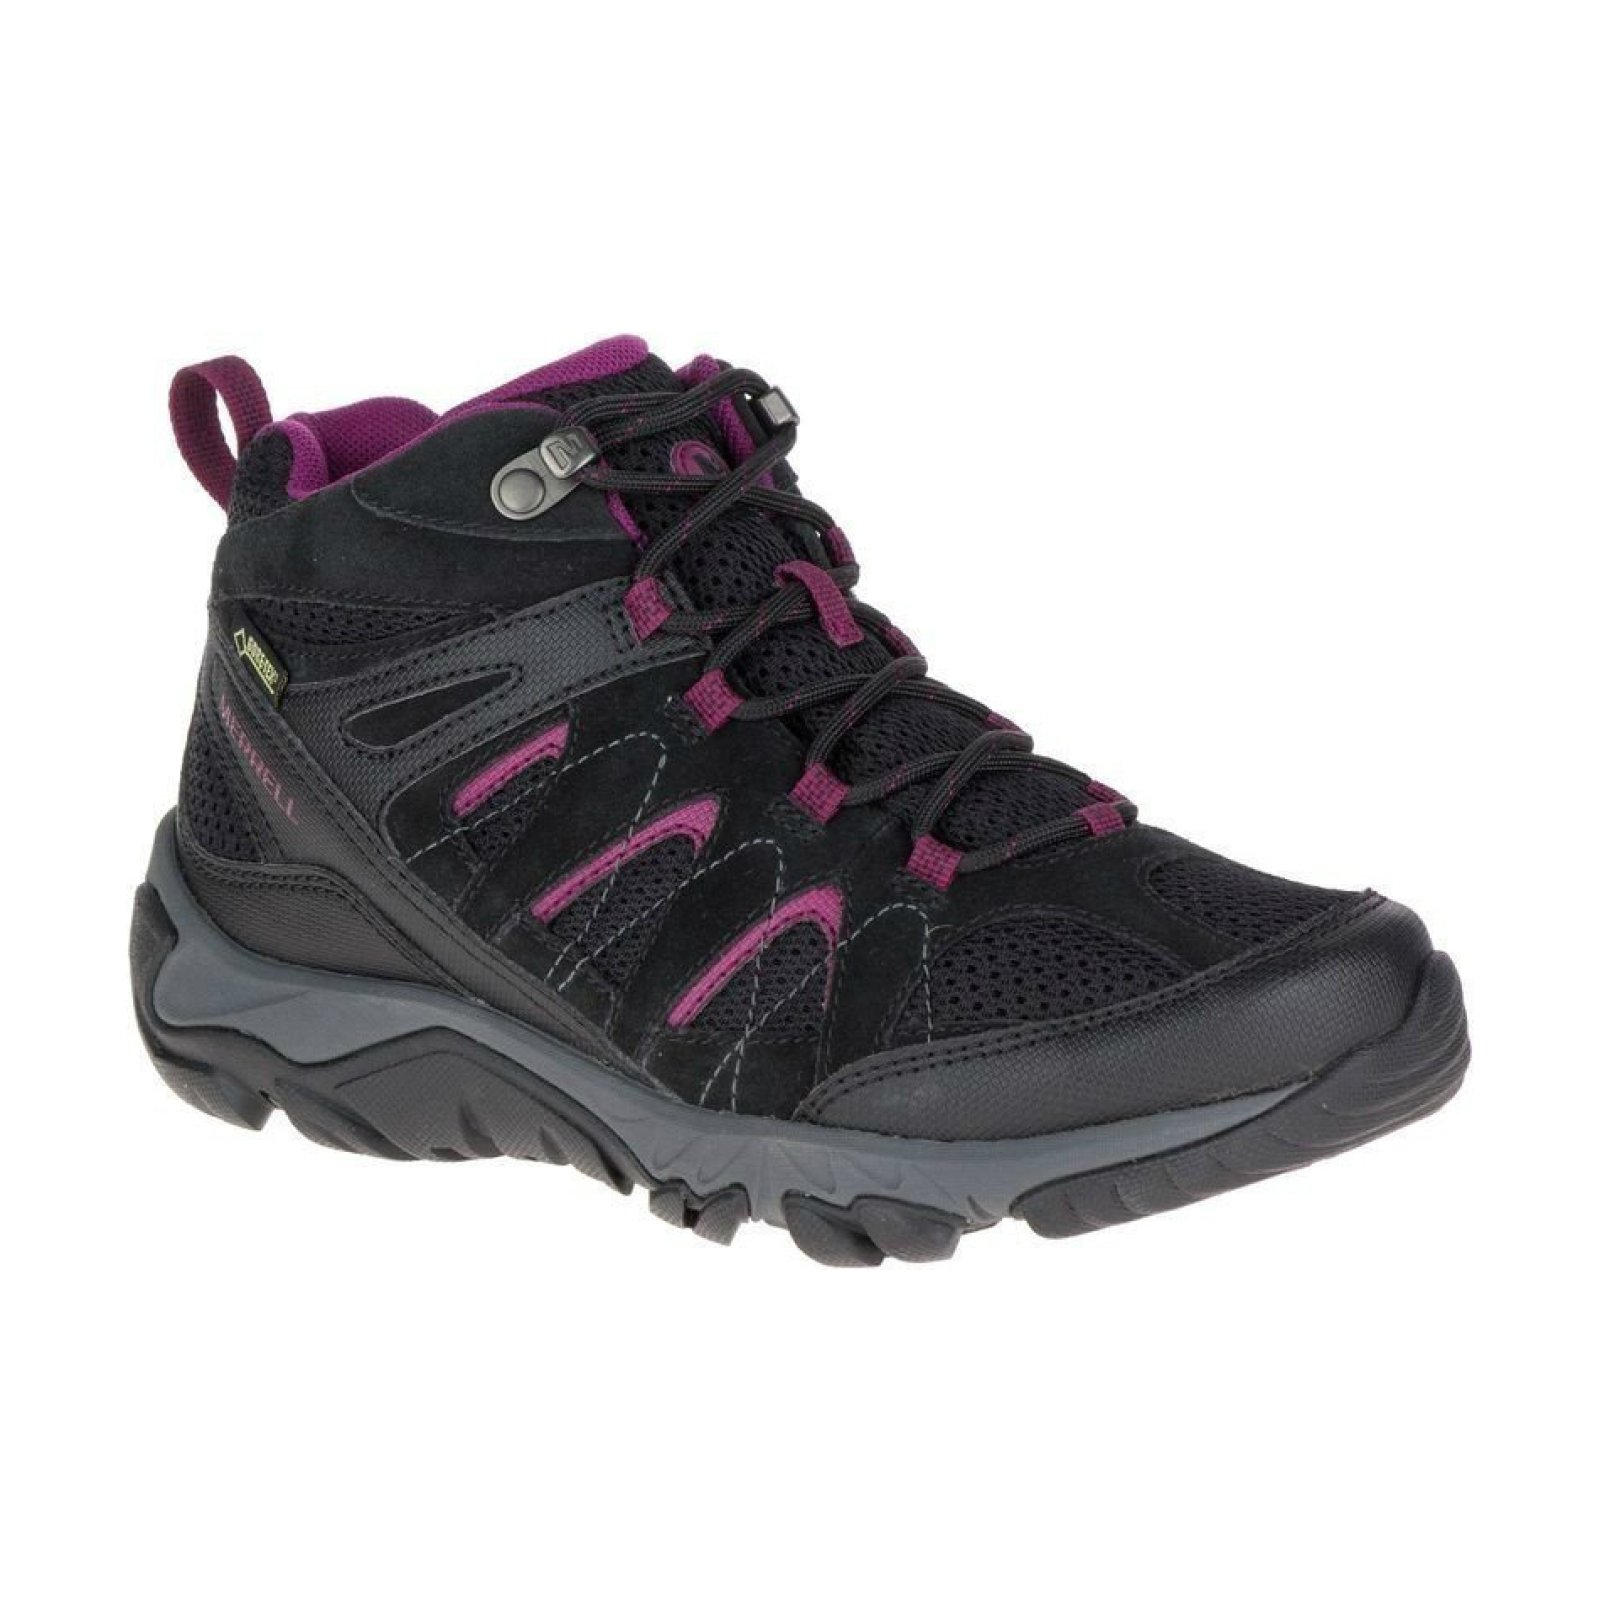 Outdoorové boty Merrell Outmost Mid Vent GTX W J09516 - Actisport.cz 3b4d786e26